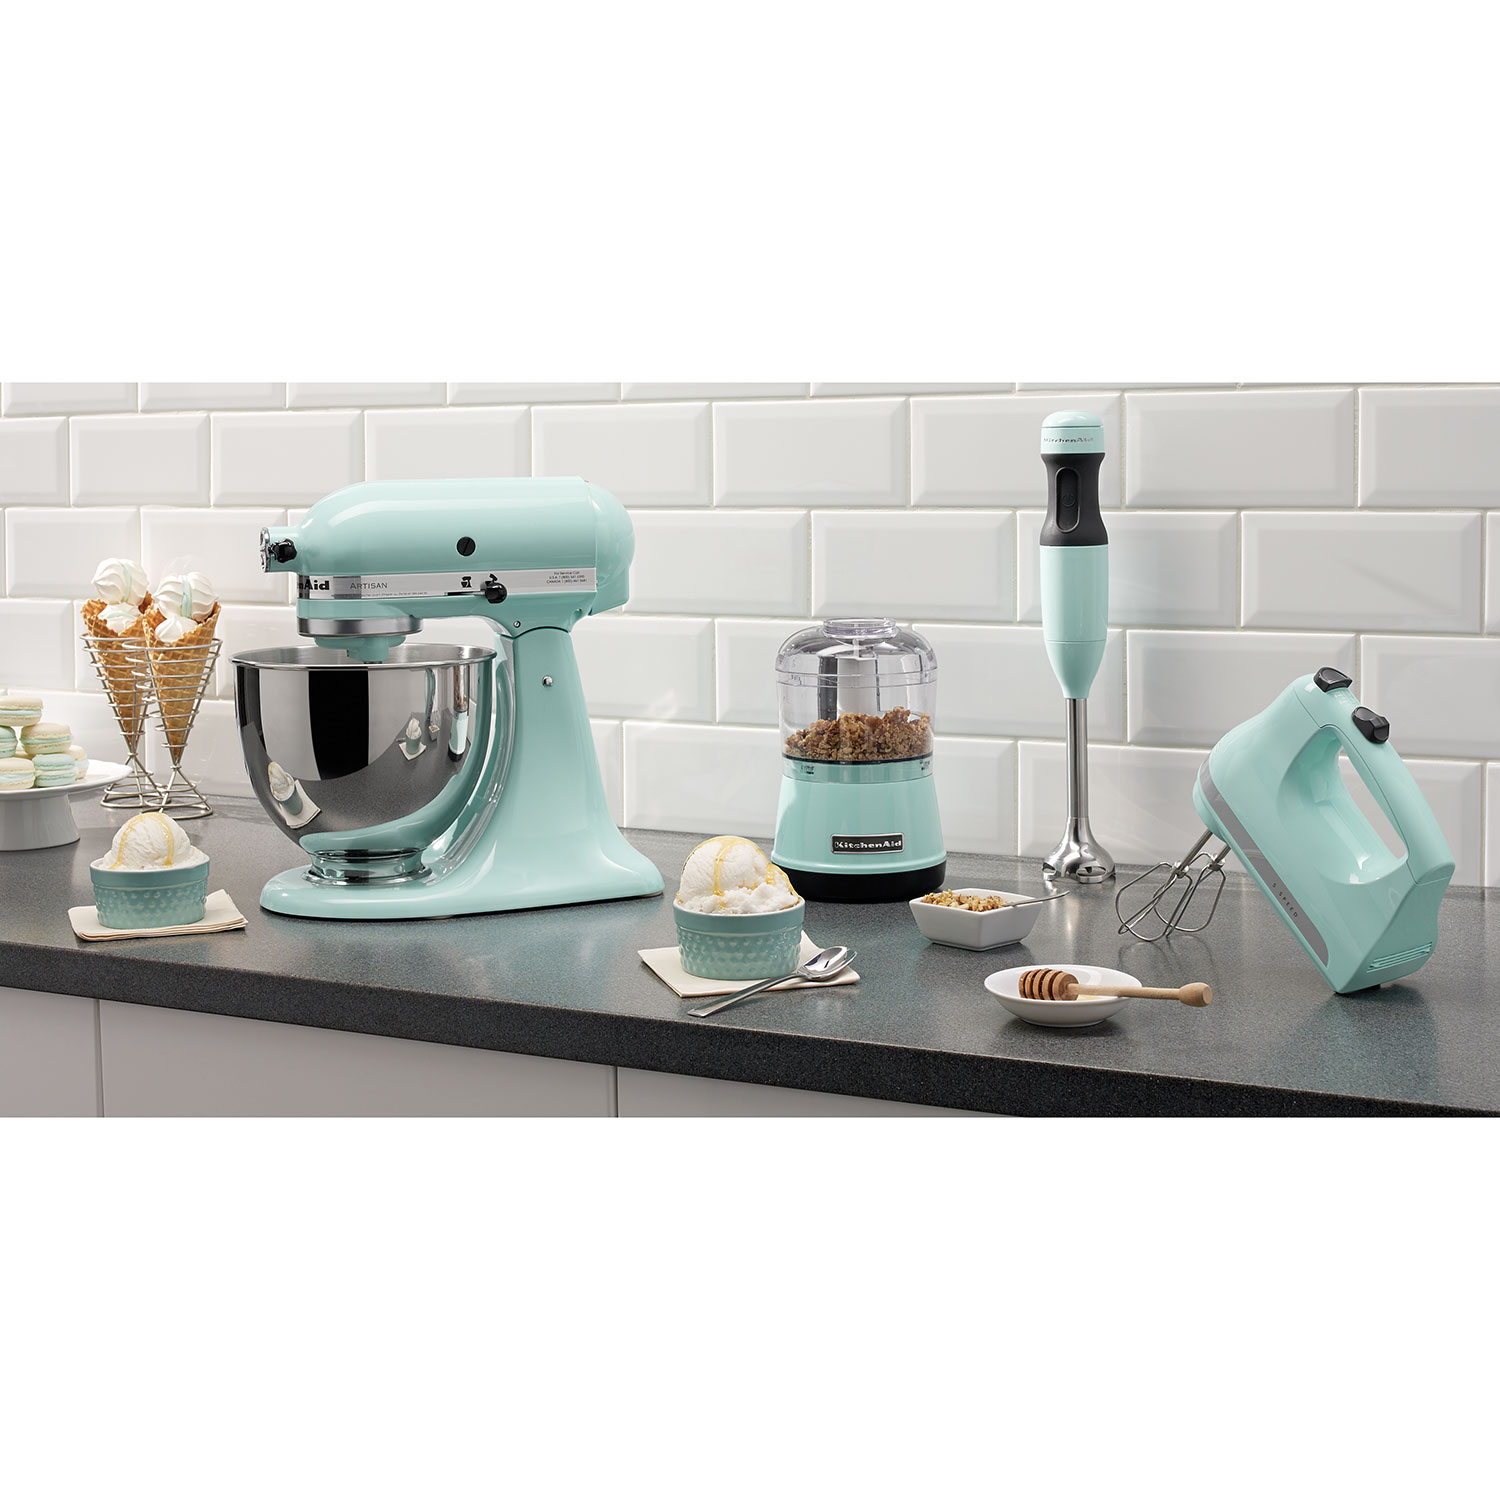 Exceptional KitchenAid Ultra Power 5 Speed Hand Mixer (KHM512IC)   Ice Blue : Hand  Mixers   Best Buy Canada